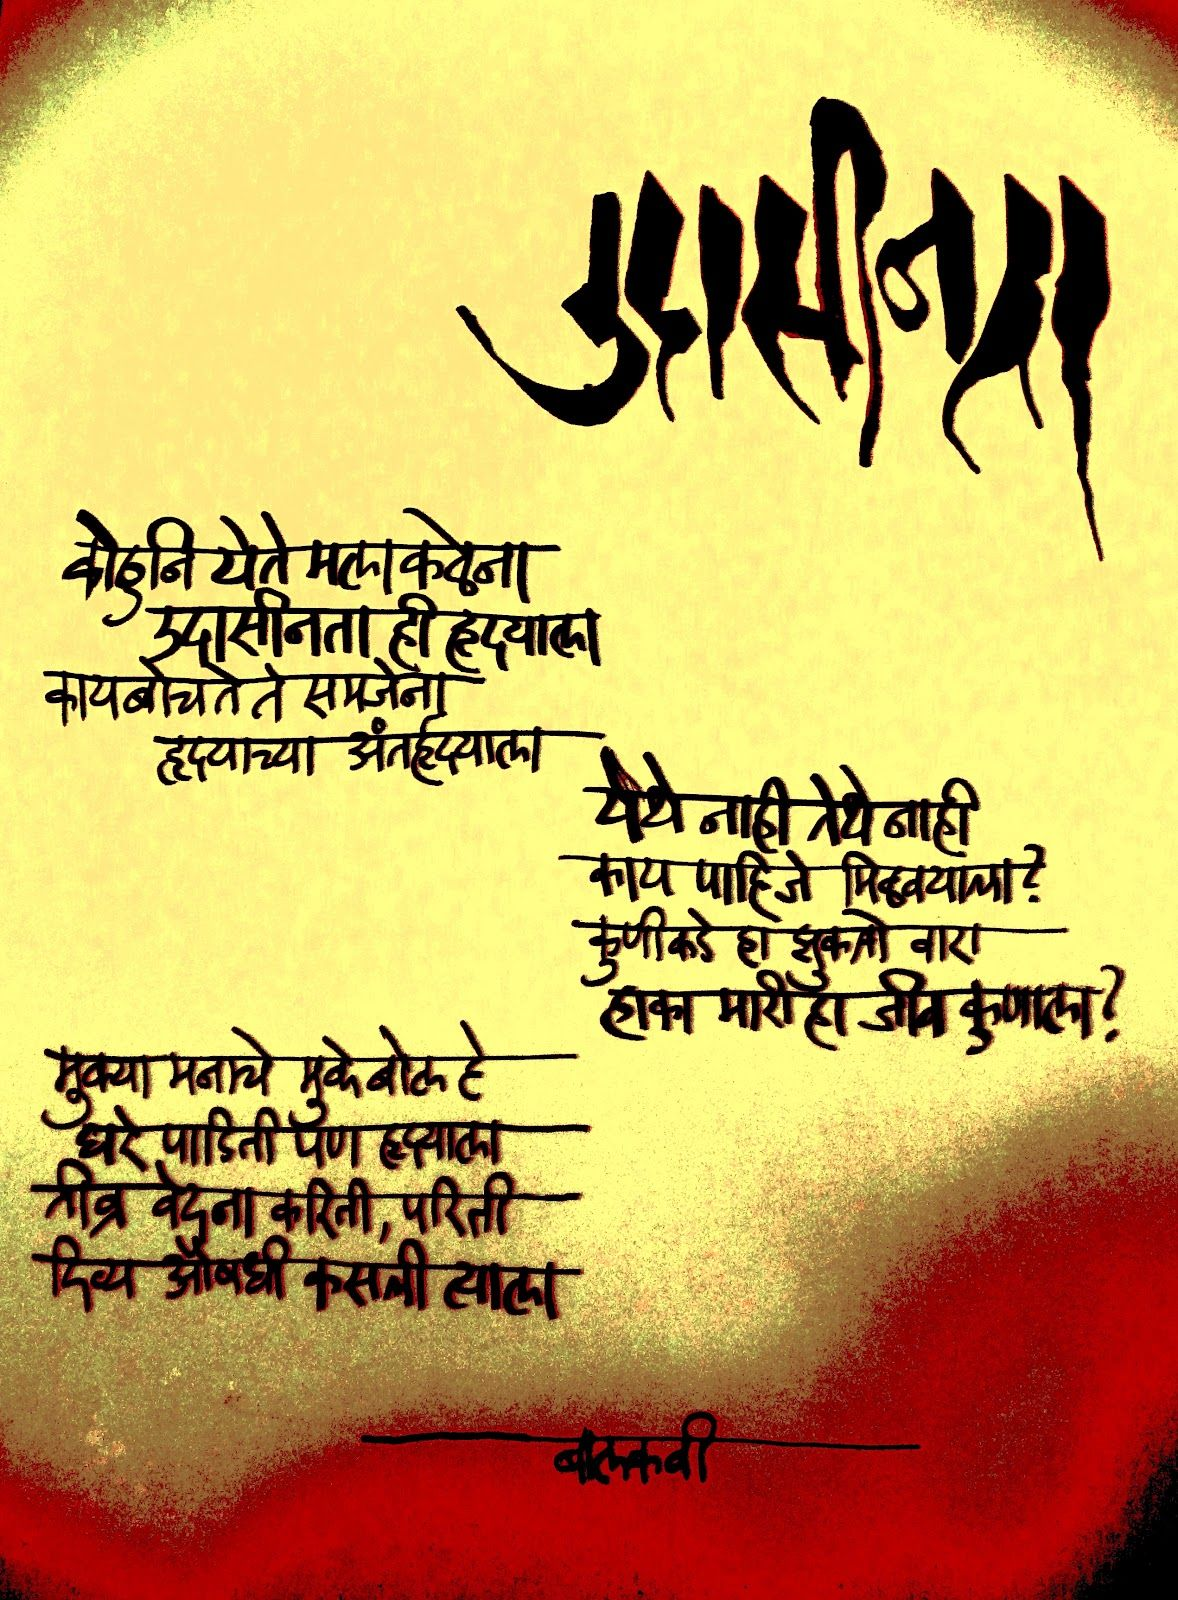 Marathi Poems Literature Pinterest Poem and Poem quotes